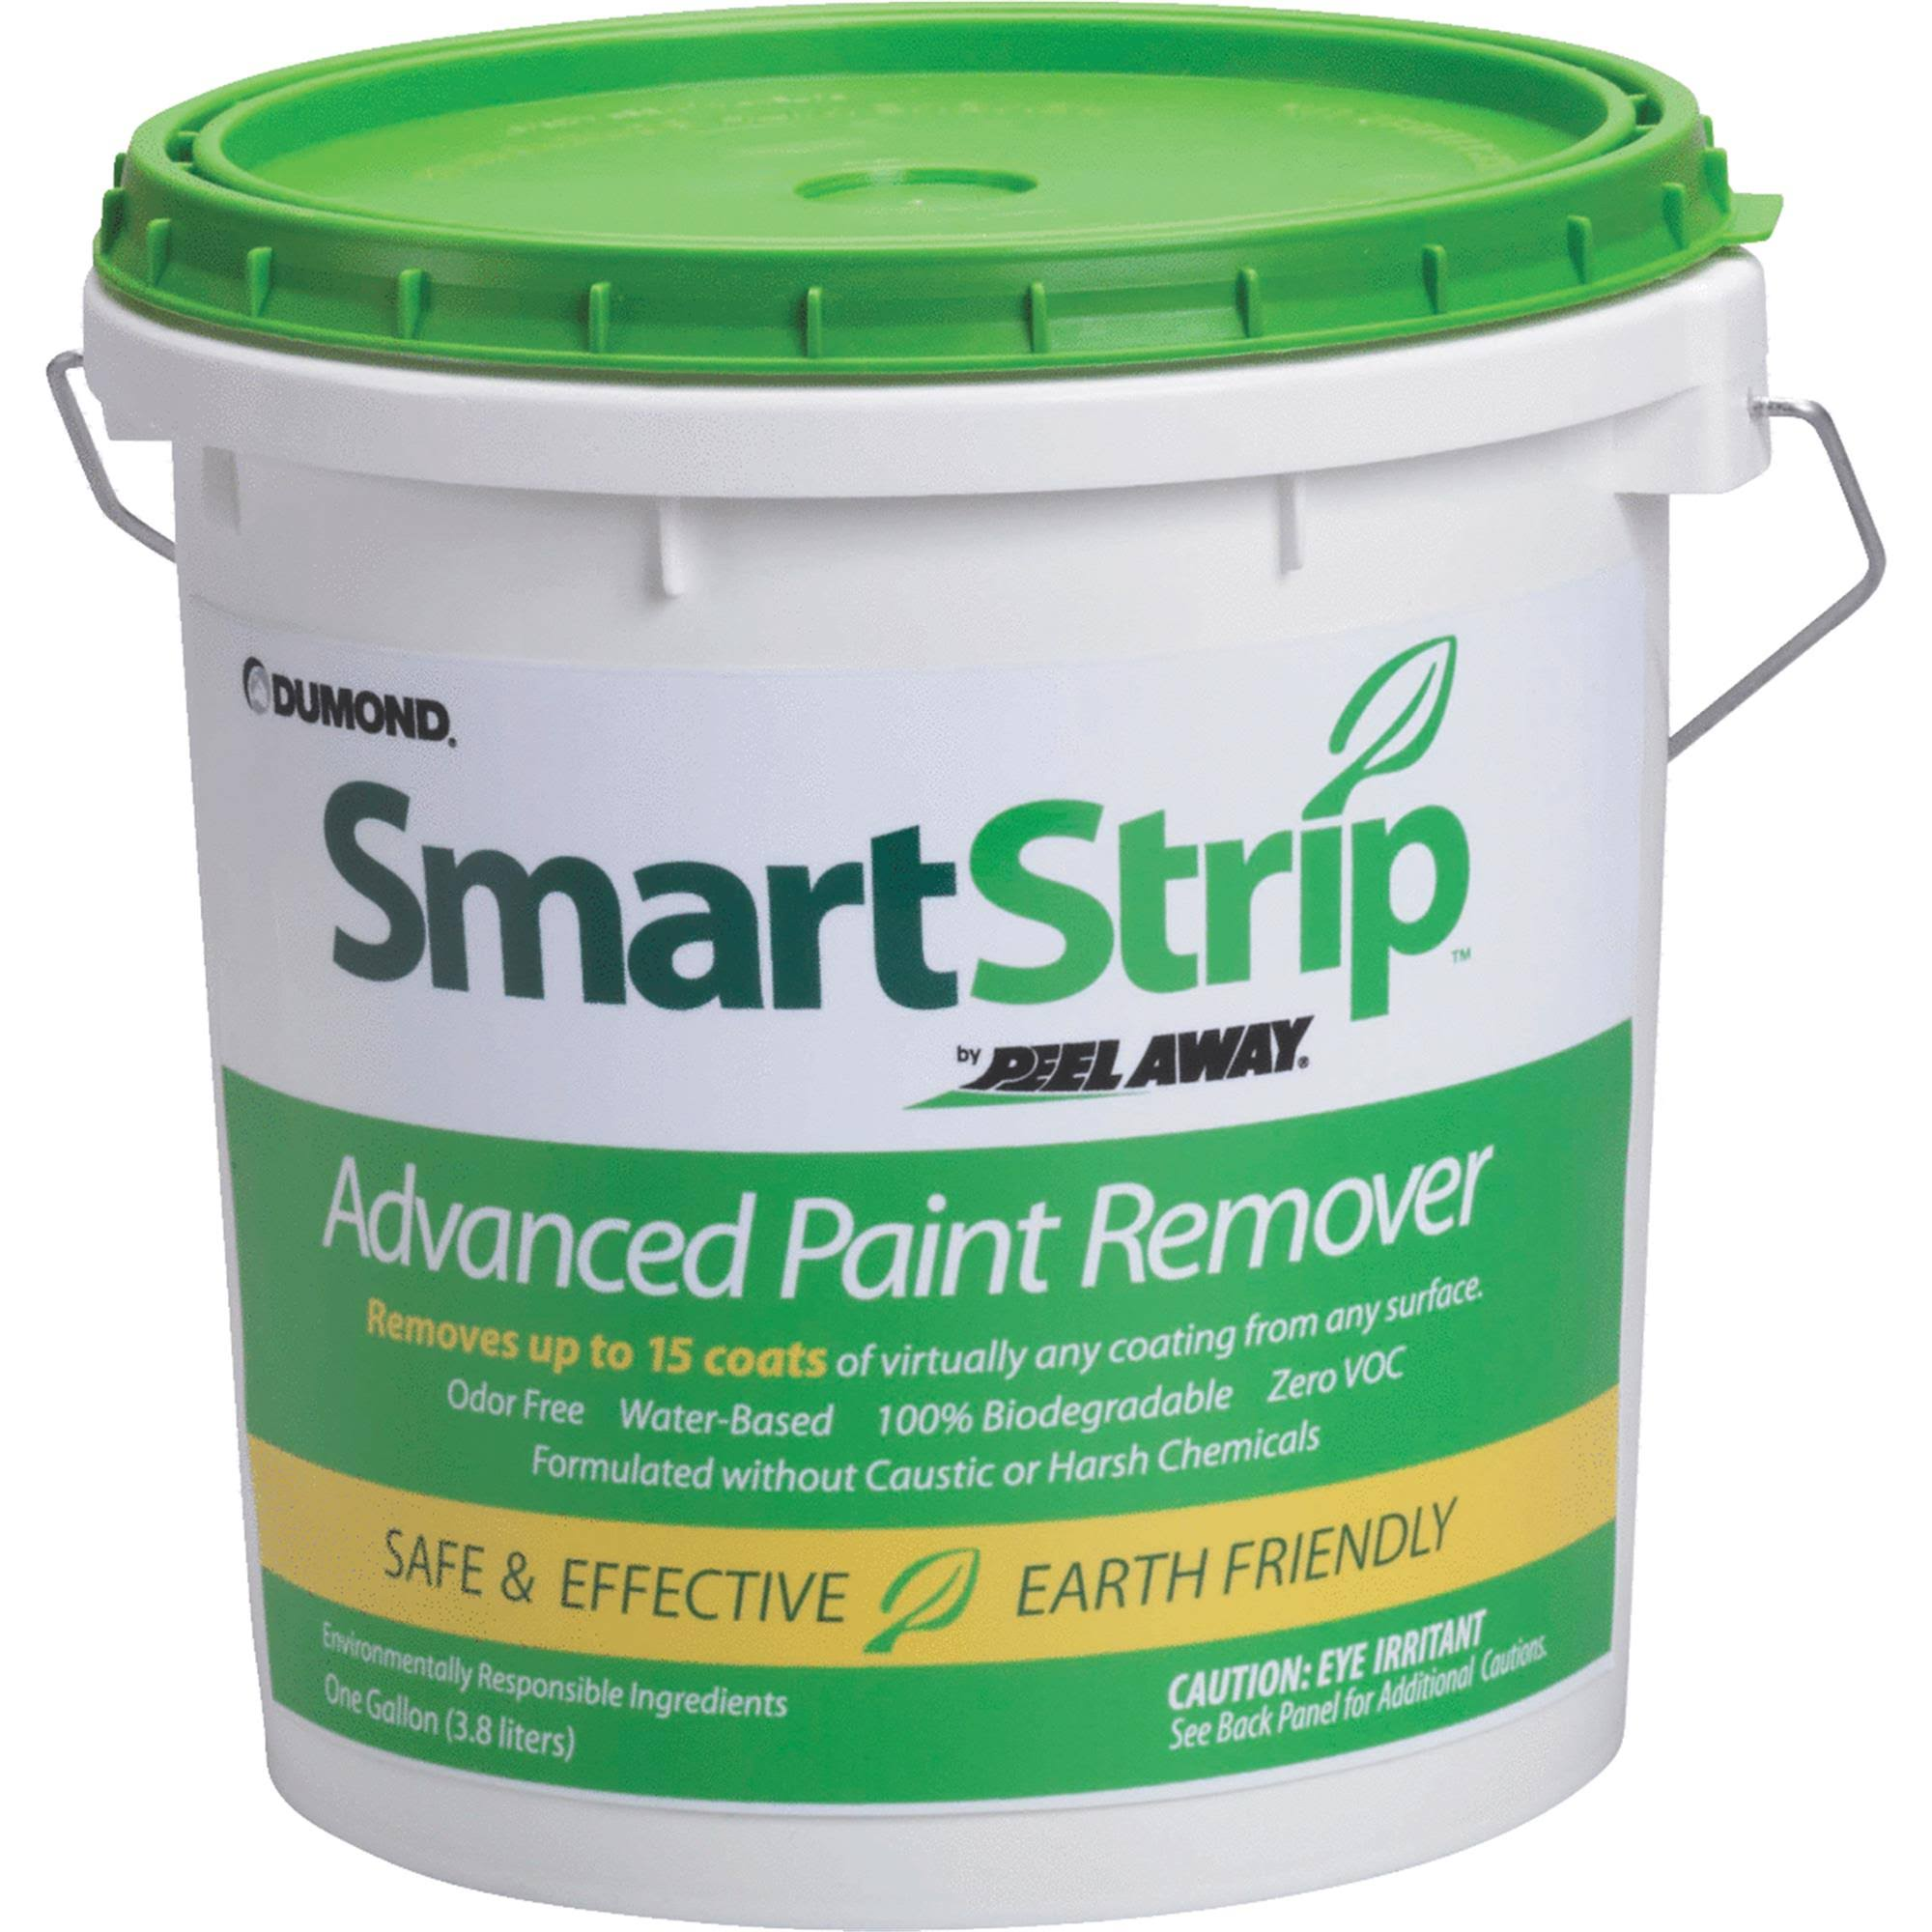 Dumond Smart Strip Paint Remover - 1 gal pail